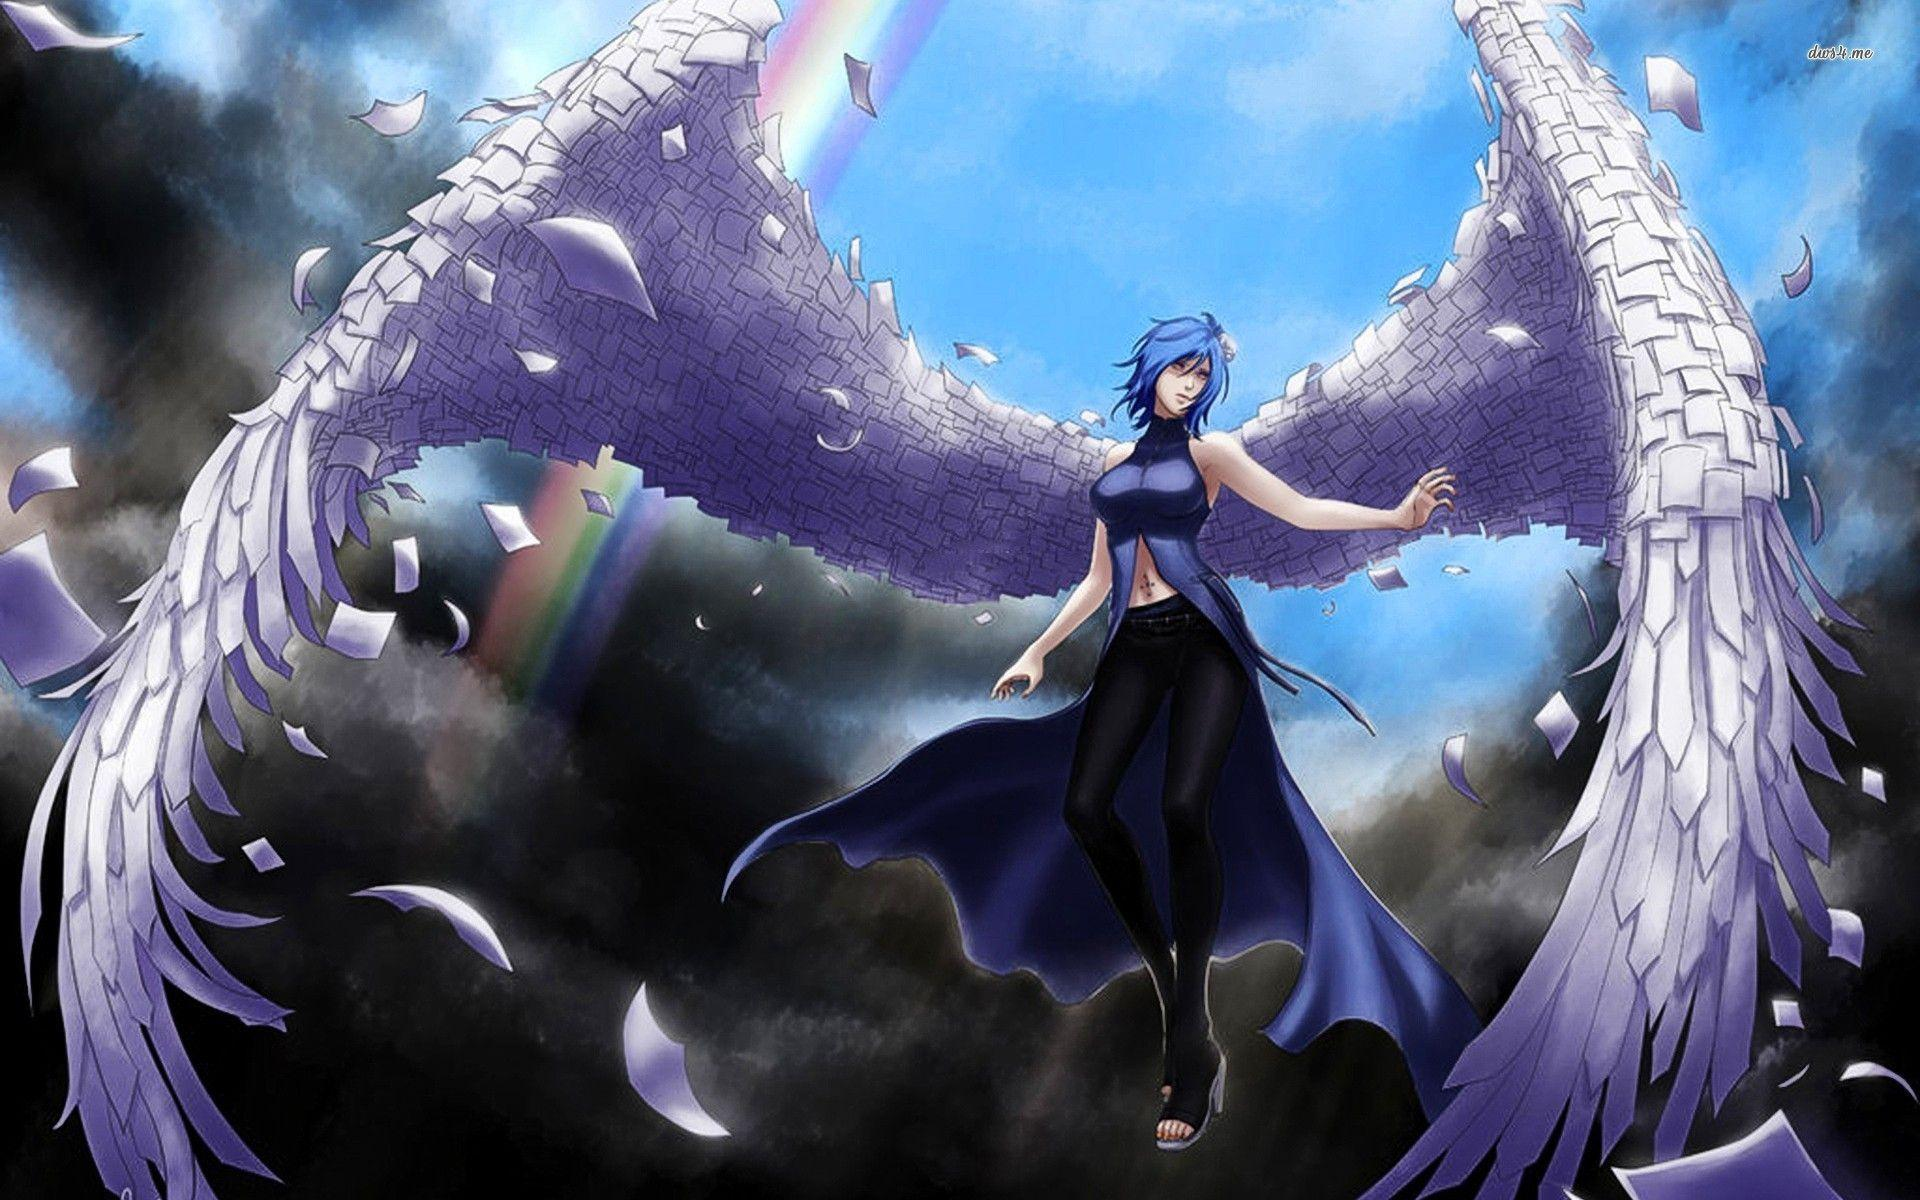 Angel (天使, Tenshi) naruto hq wallpapers